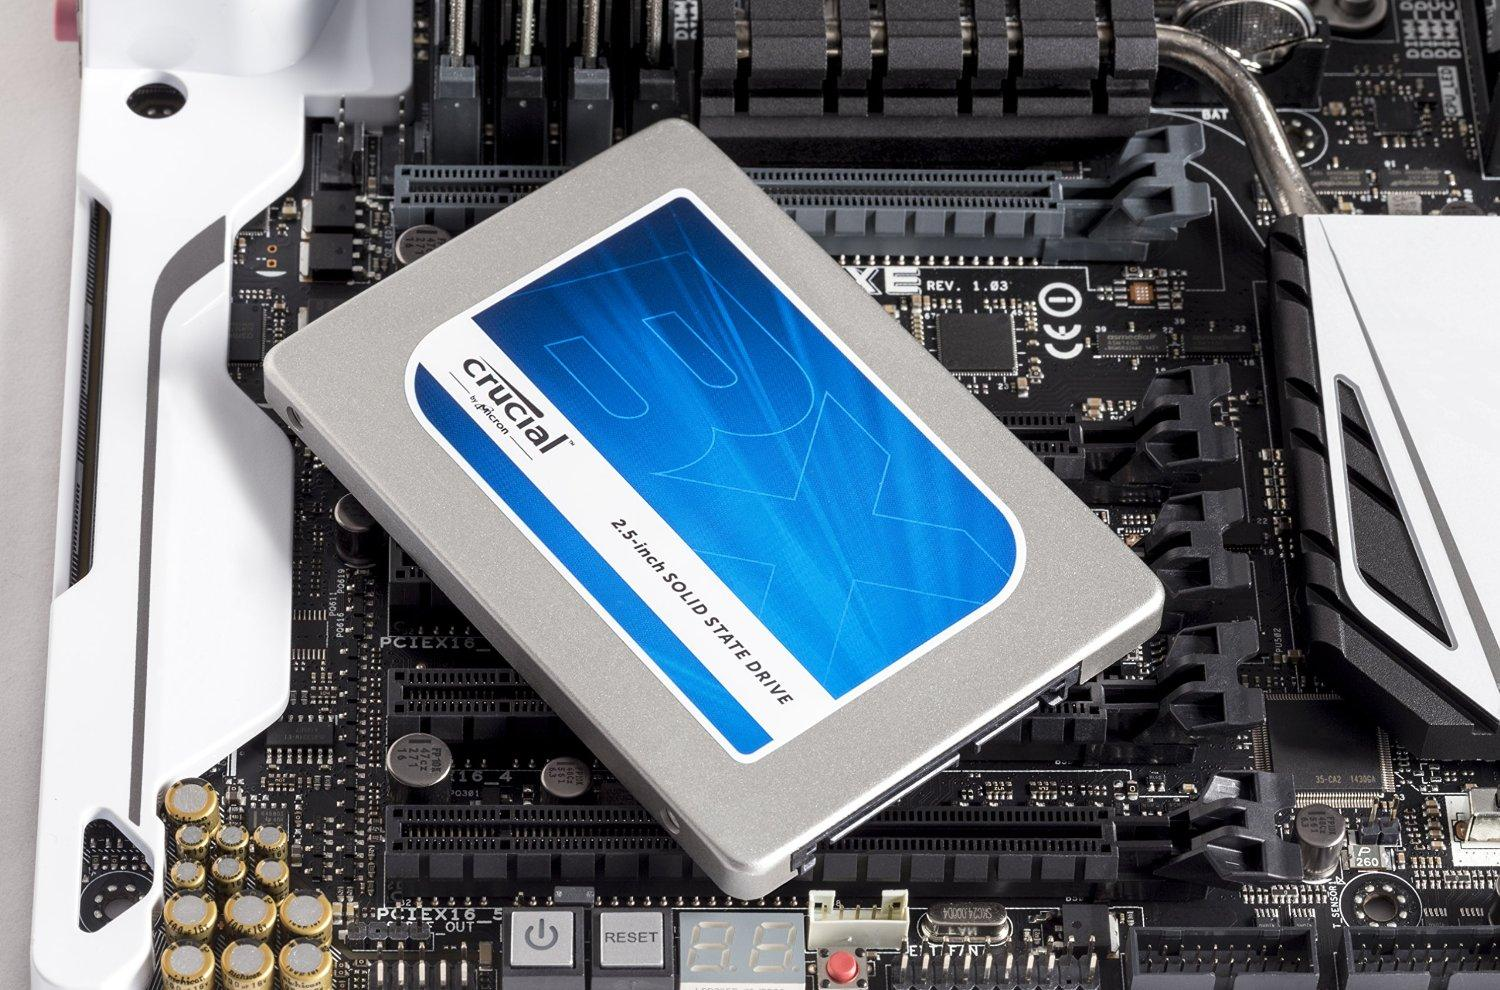 $66.99 Crucial BX100 250GB SATA 2.5 Inch Internal Solid State Drive